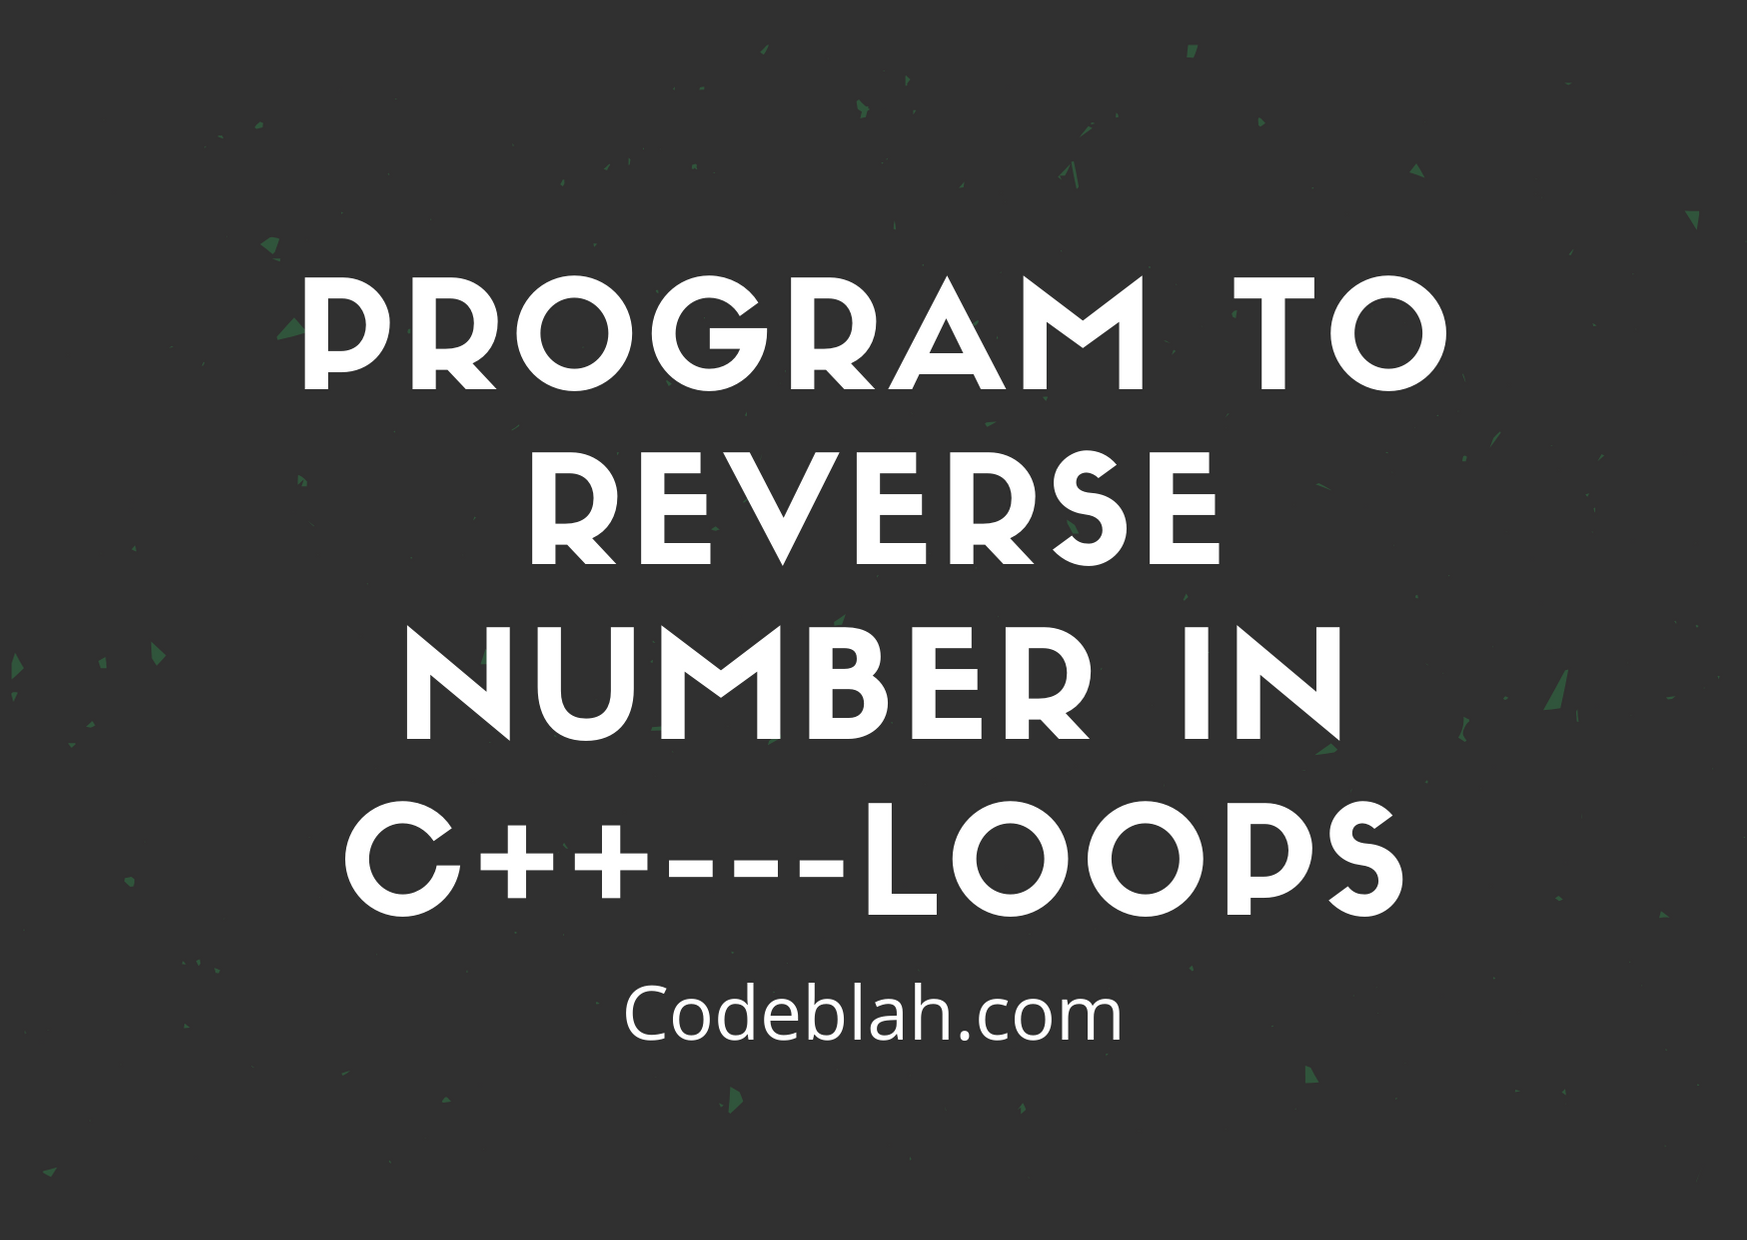 Program to Reverse Number in C++---Loops